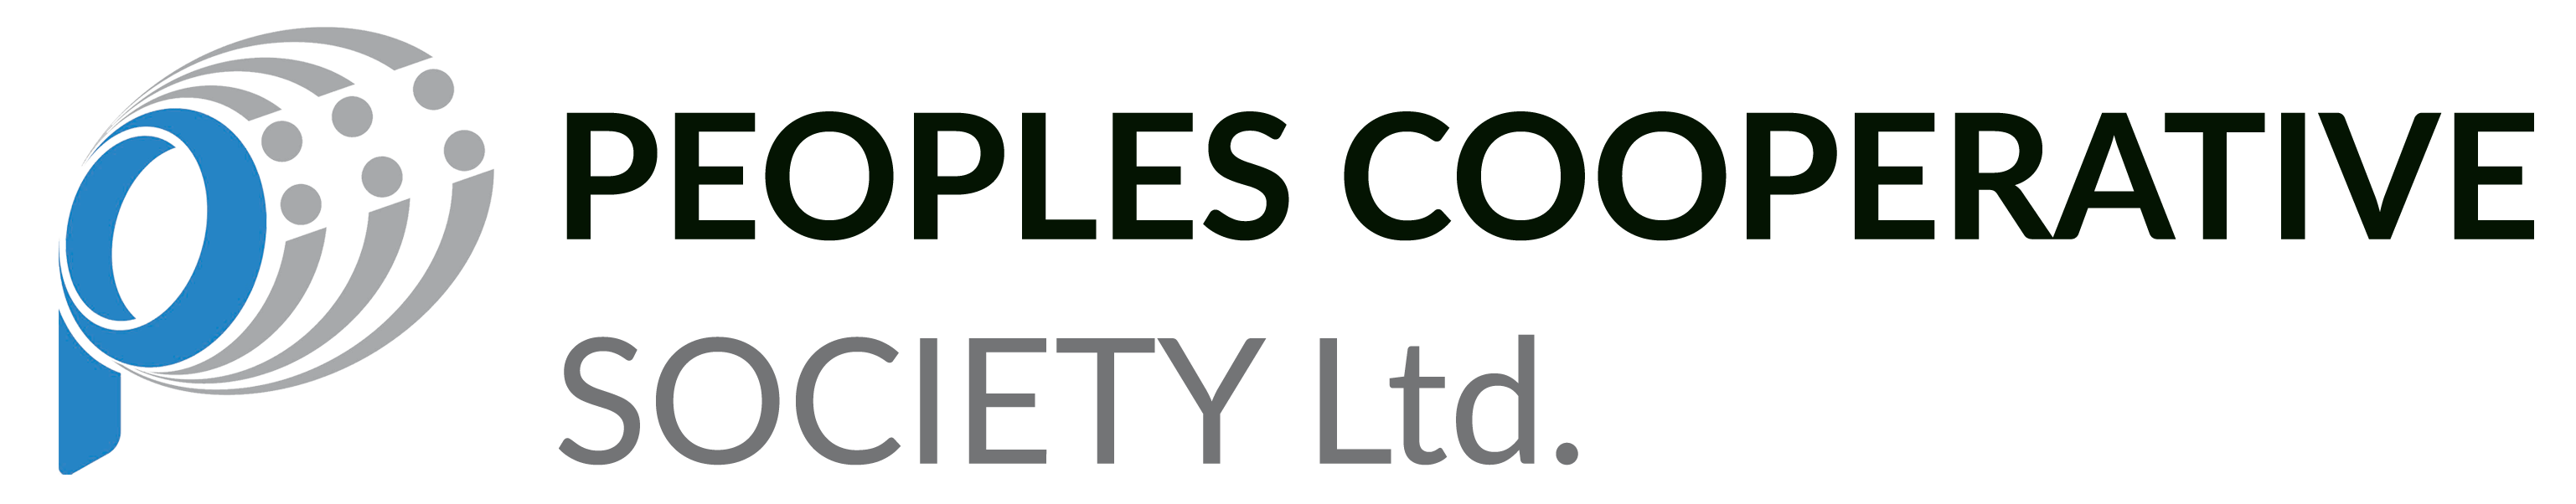 Peoples Co-operative Society